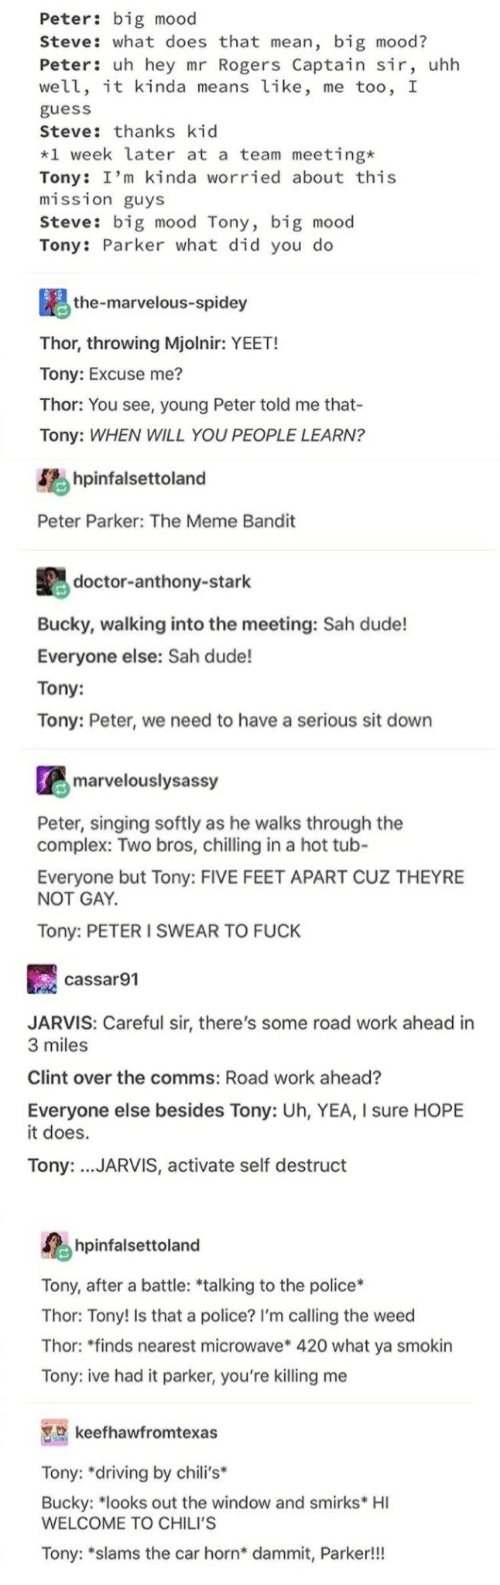 """youre killing me: Peter: big mood  Steve: what does that mean, big mood?  Peter: uh hey mr Rogers Captain sir, uhh  well, it kinda means like, me too, I  guess  Steve: thanks kid  *1 week later at a team meeting*  Tony: I'm kinda worried about this  mission guys  Steve: big mood Tony, big mood  Tony: Parker what did you do  the-marvelous-spidey  Thor, throwing Mjolnir: YEET!  Tony: Excuse me?  Thor: You see, young Peter told me that-  Tony: WHEN WILL YOU PEOPLE LEARN?  hpinfalsettoland  Peter Parker: The Meme Bandit  doctor-anthony-stark  Bucky, walking into the meeting: Sah dude!  Everyone else: Sah dude!  Tony:  Tony: Peter, we need to have a serious sit down  marvelouslysassy  Peter, singing softly as he walks through the  complex: Two bros, chilling in a hot tub-  Everyone but Tony: FIVE FEET APART CUZ THEYRE  NOT GAY  Tony: PETER I SWEAR TO FUCK  cassar91  JARVIS: Careful sir, there's some road work ahead in  3 miles  Clint over the comms: Road work ahead?  Everyone else besides Tony: Uh, YEA, I sure HOPE  it does.  Tony: .JARVIS, activate self destruct  hpinfalsettoland  Tony, after a battle: *talking to the police*  Thor: Tony! Is that a police? I'm calling the weed  Thor: """"finds nearest microwave* 420 what ya smokin  Tony: ive had it parker, you're killing me  keefhawfromtexas  Tony: """"driving by chili's*  Bucky: """"looks out the window and smirks* HI  WELCOME TO CHILI'S  Tony: """"slams the car horn* dammit, Parker!!!"""